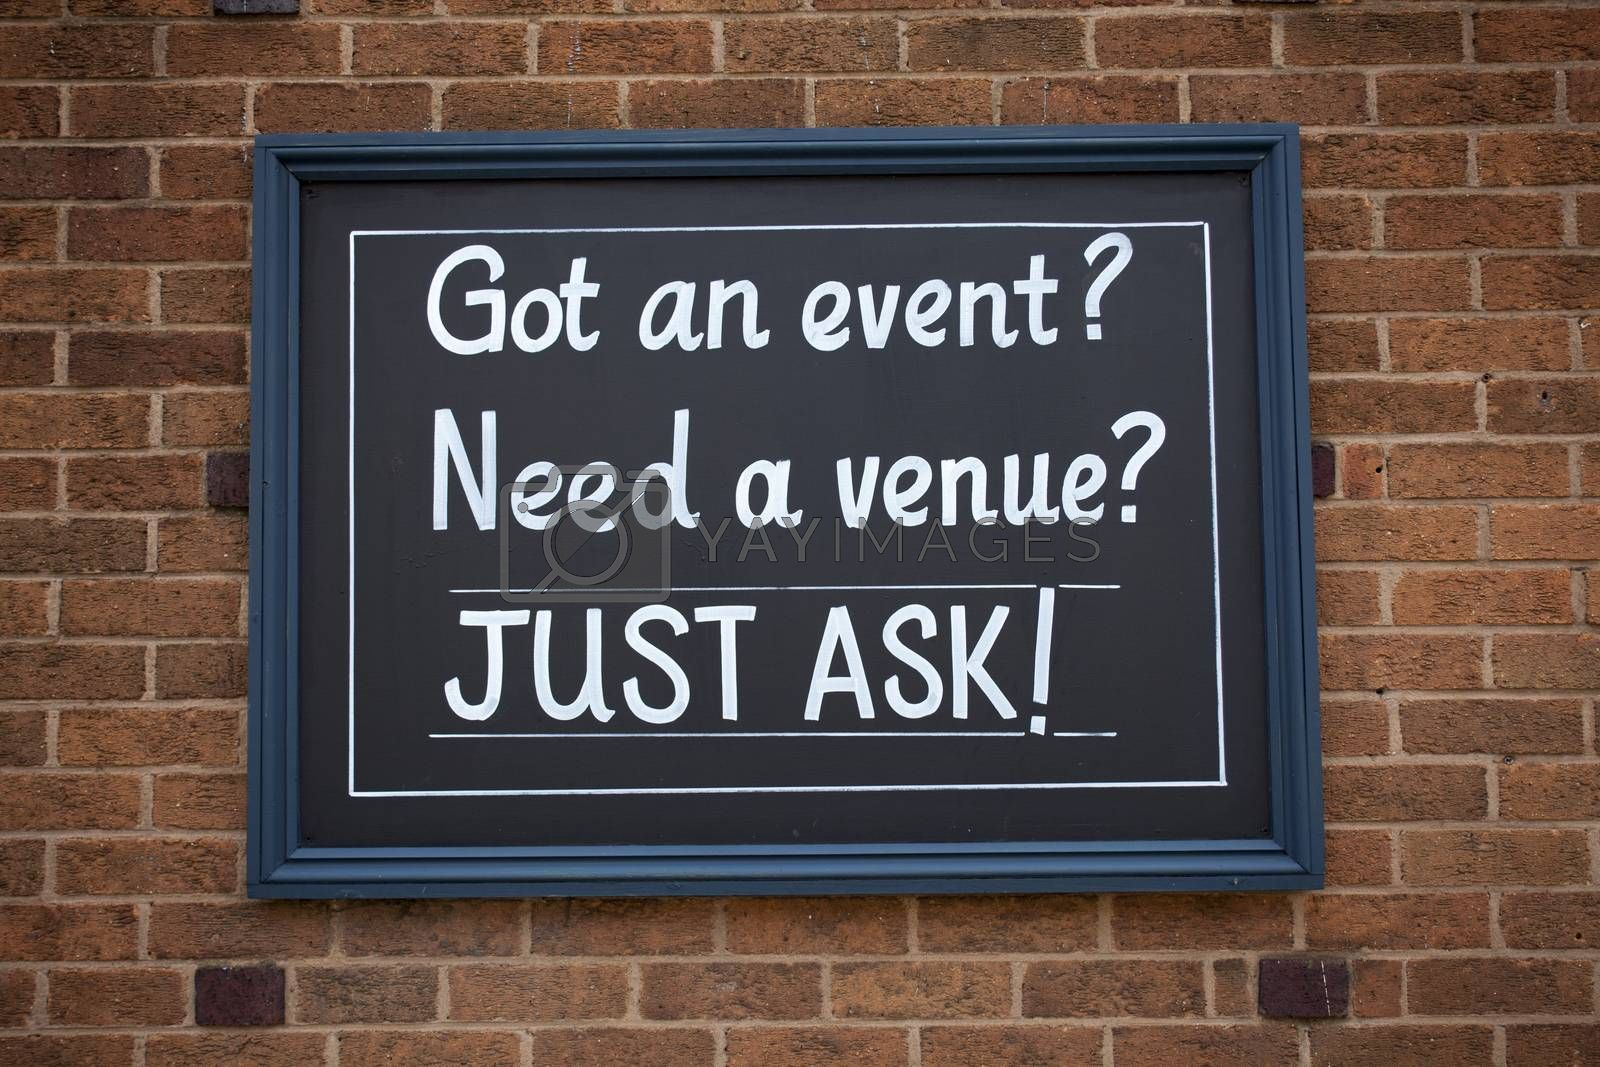 Royalty free image of Sign got an event, need a venue just ask on the street. by artursz